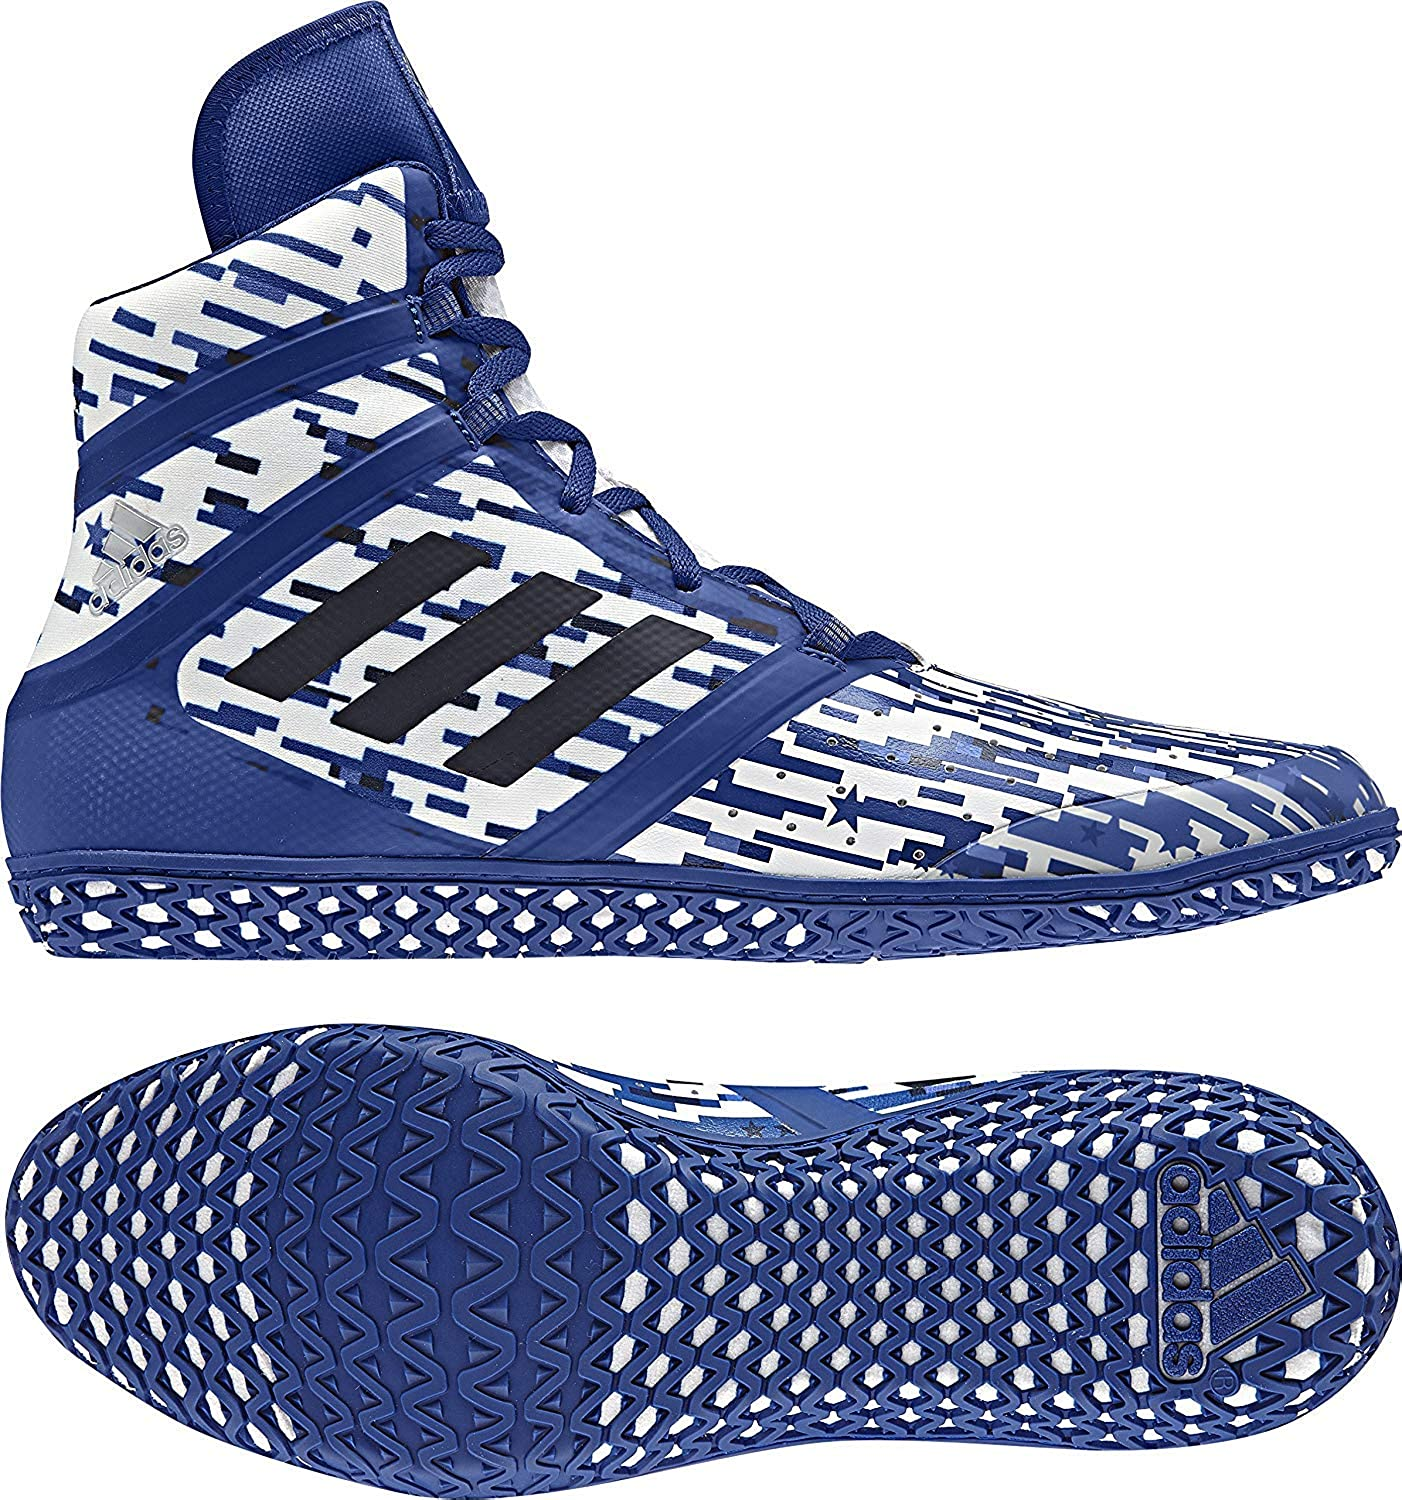 adidas Impact Super beauty product restock quality top! Men's Ranking TOP1 Wrestling Shoe